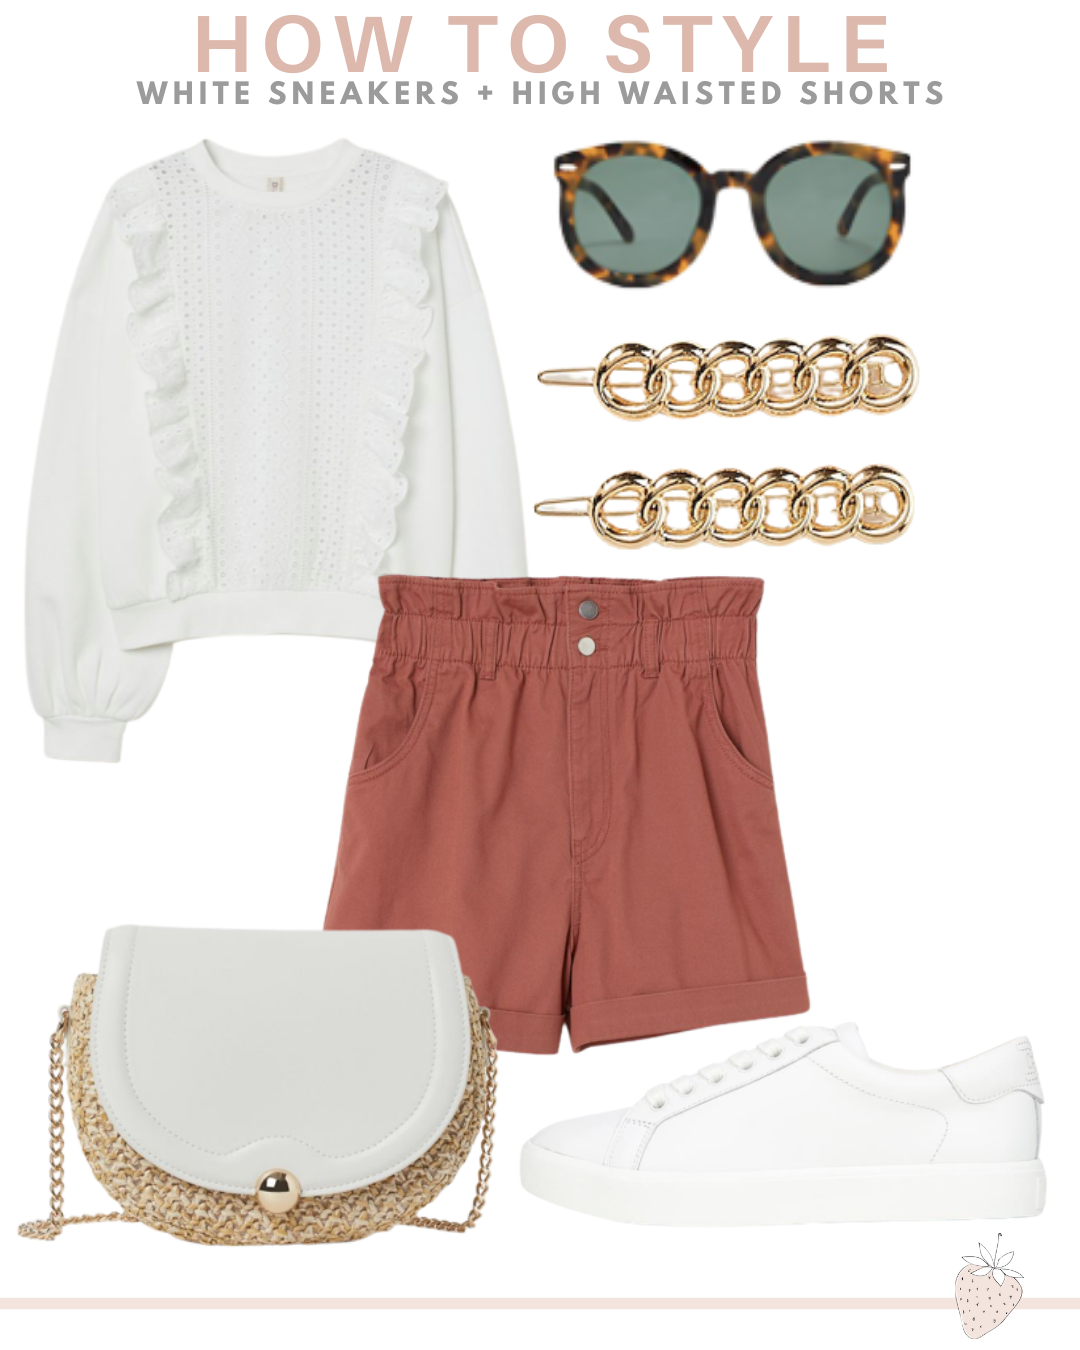 10 Ways To Style White Sneakers | high waisted shorts outfit